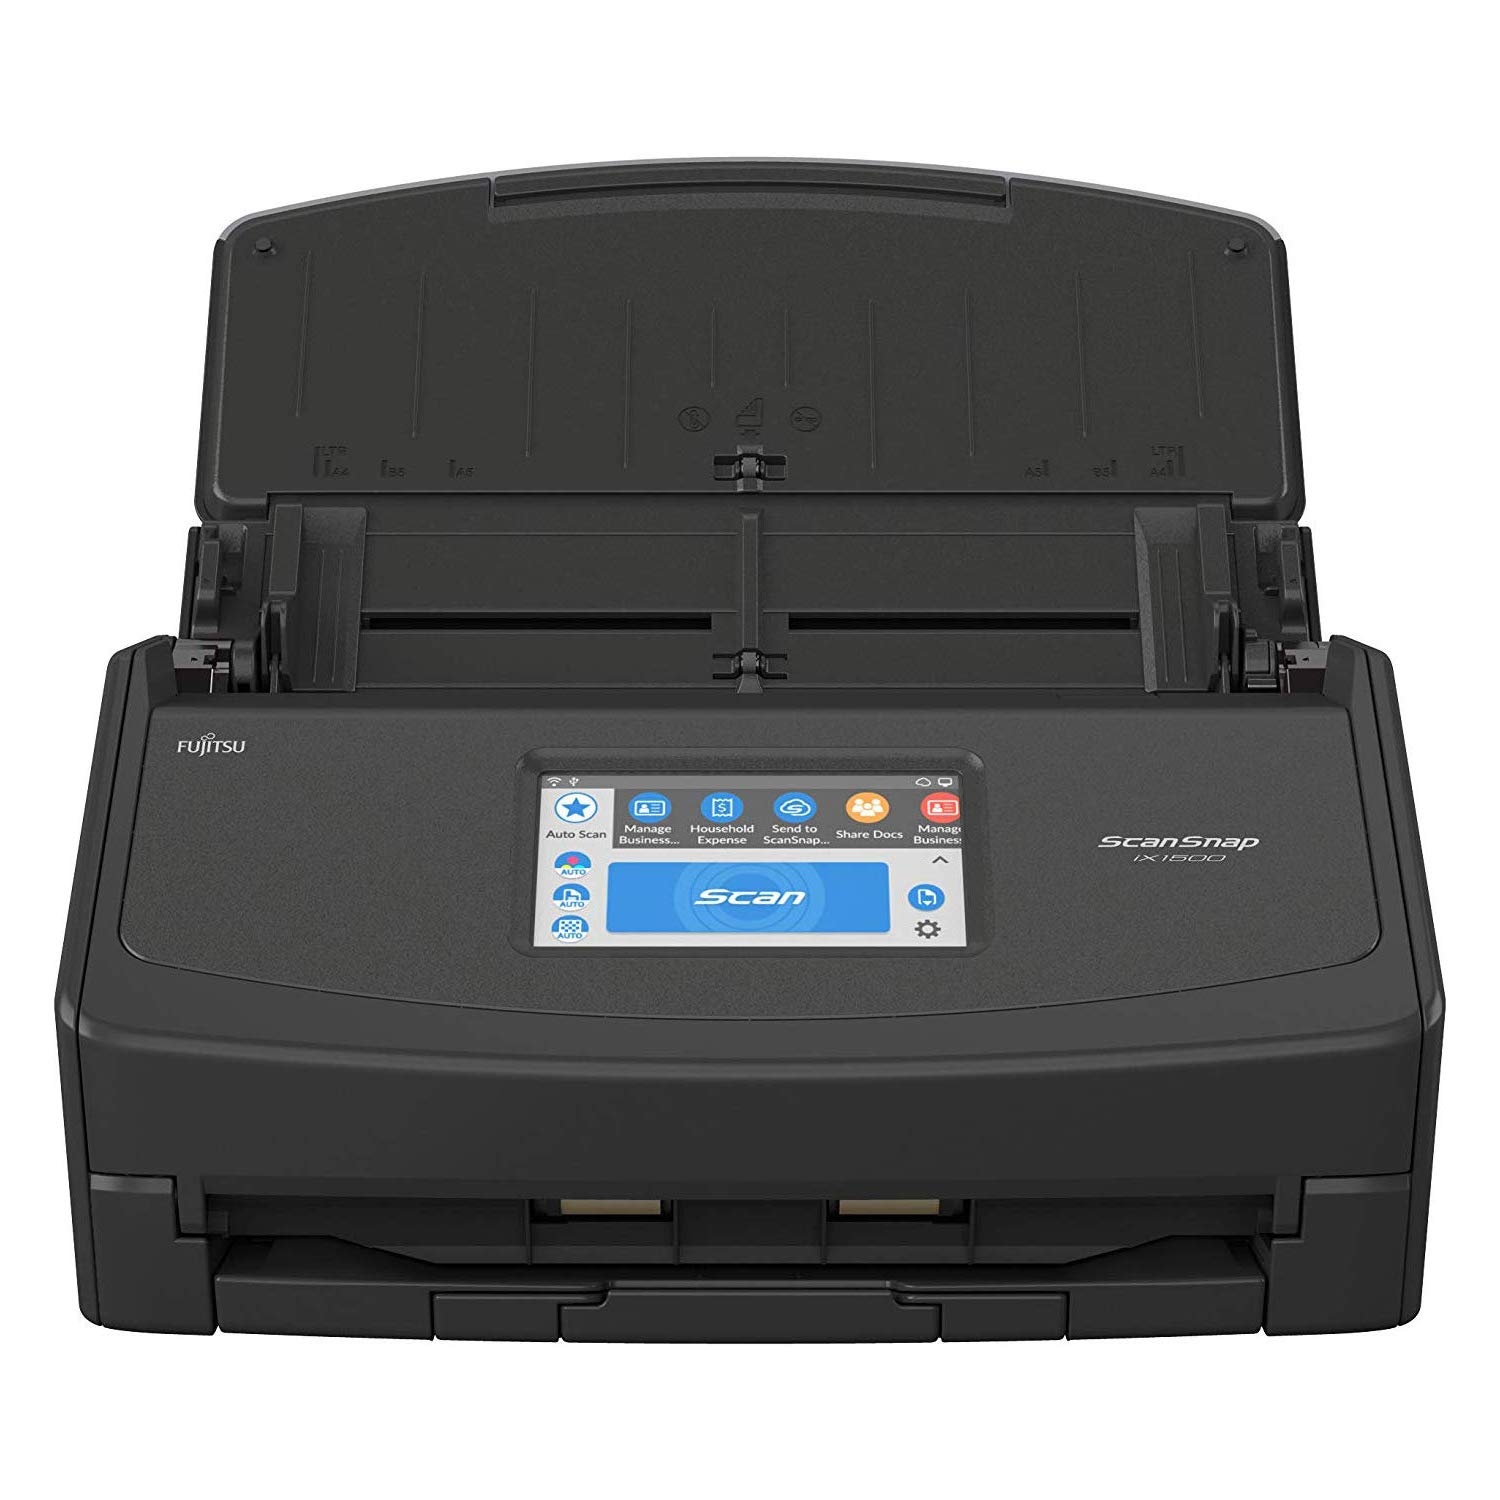 Fujitsu ScanSnap iX1500 Color Duplex Document Scanner with Touch Screen for Mac and PC (Black Model) by Fujitsu